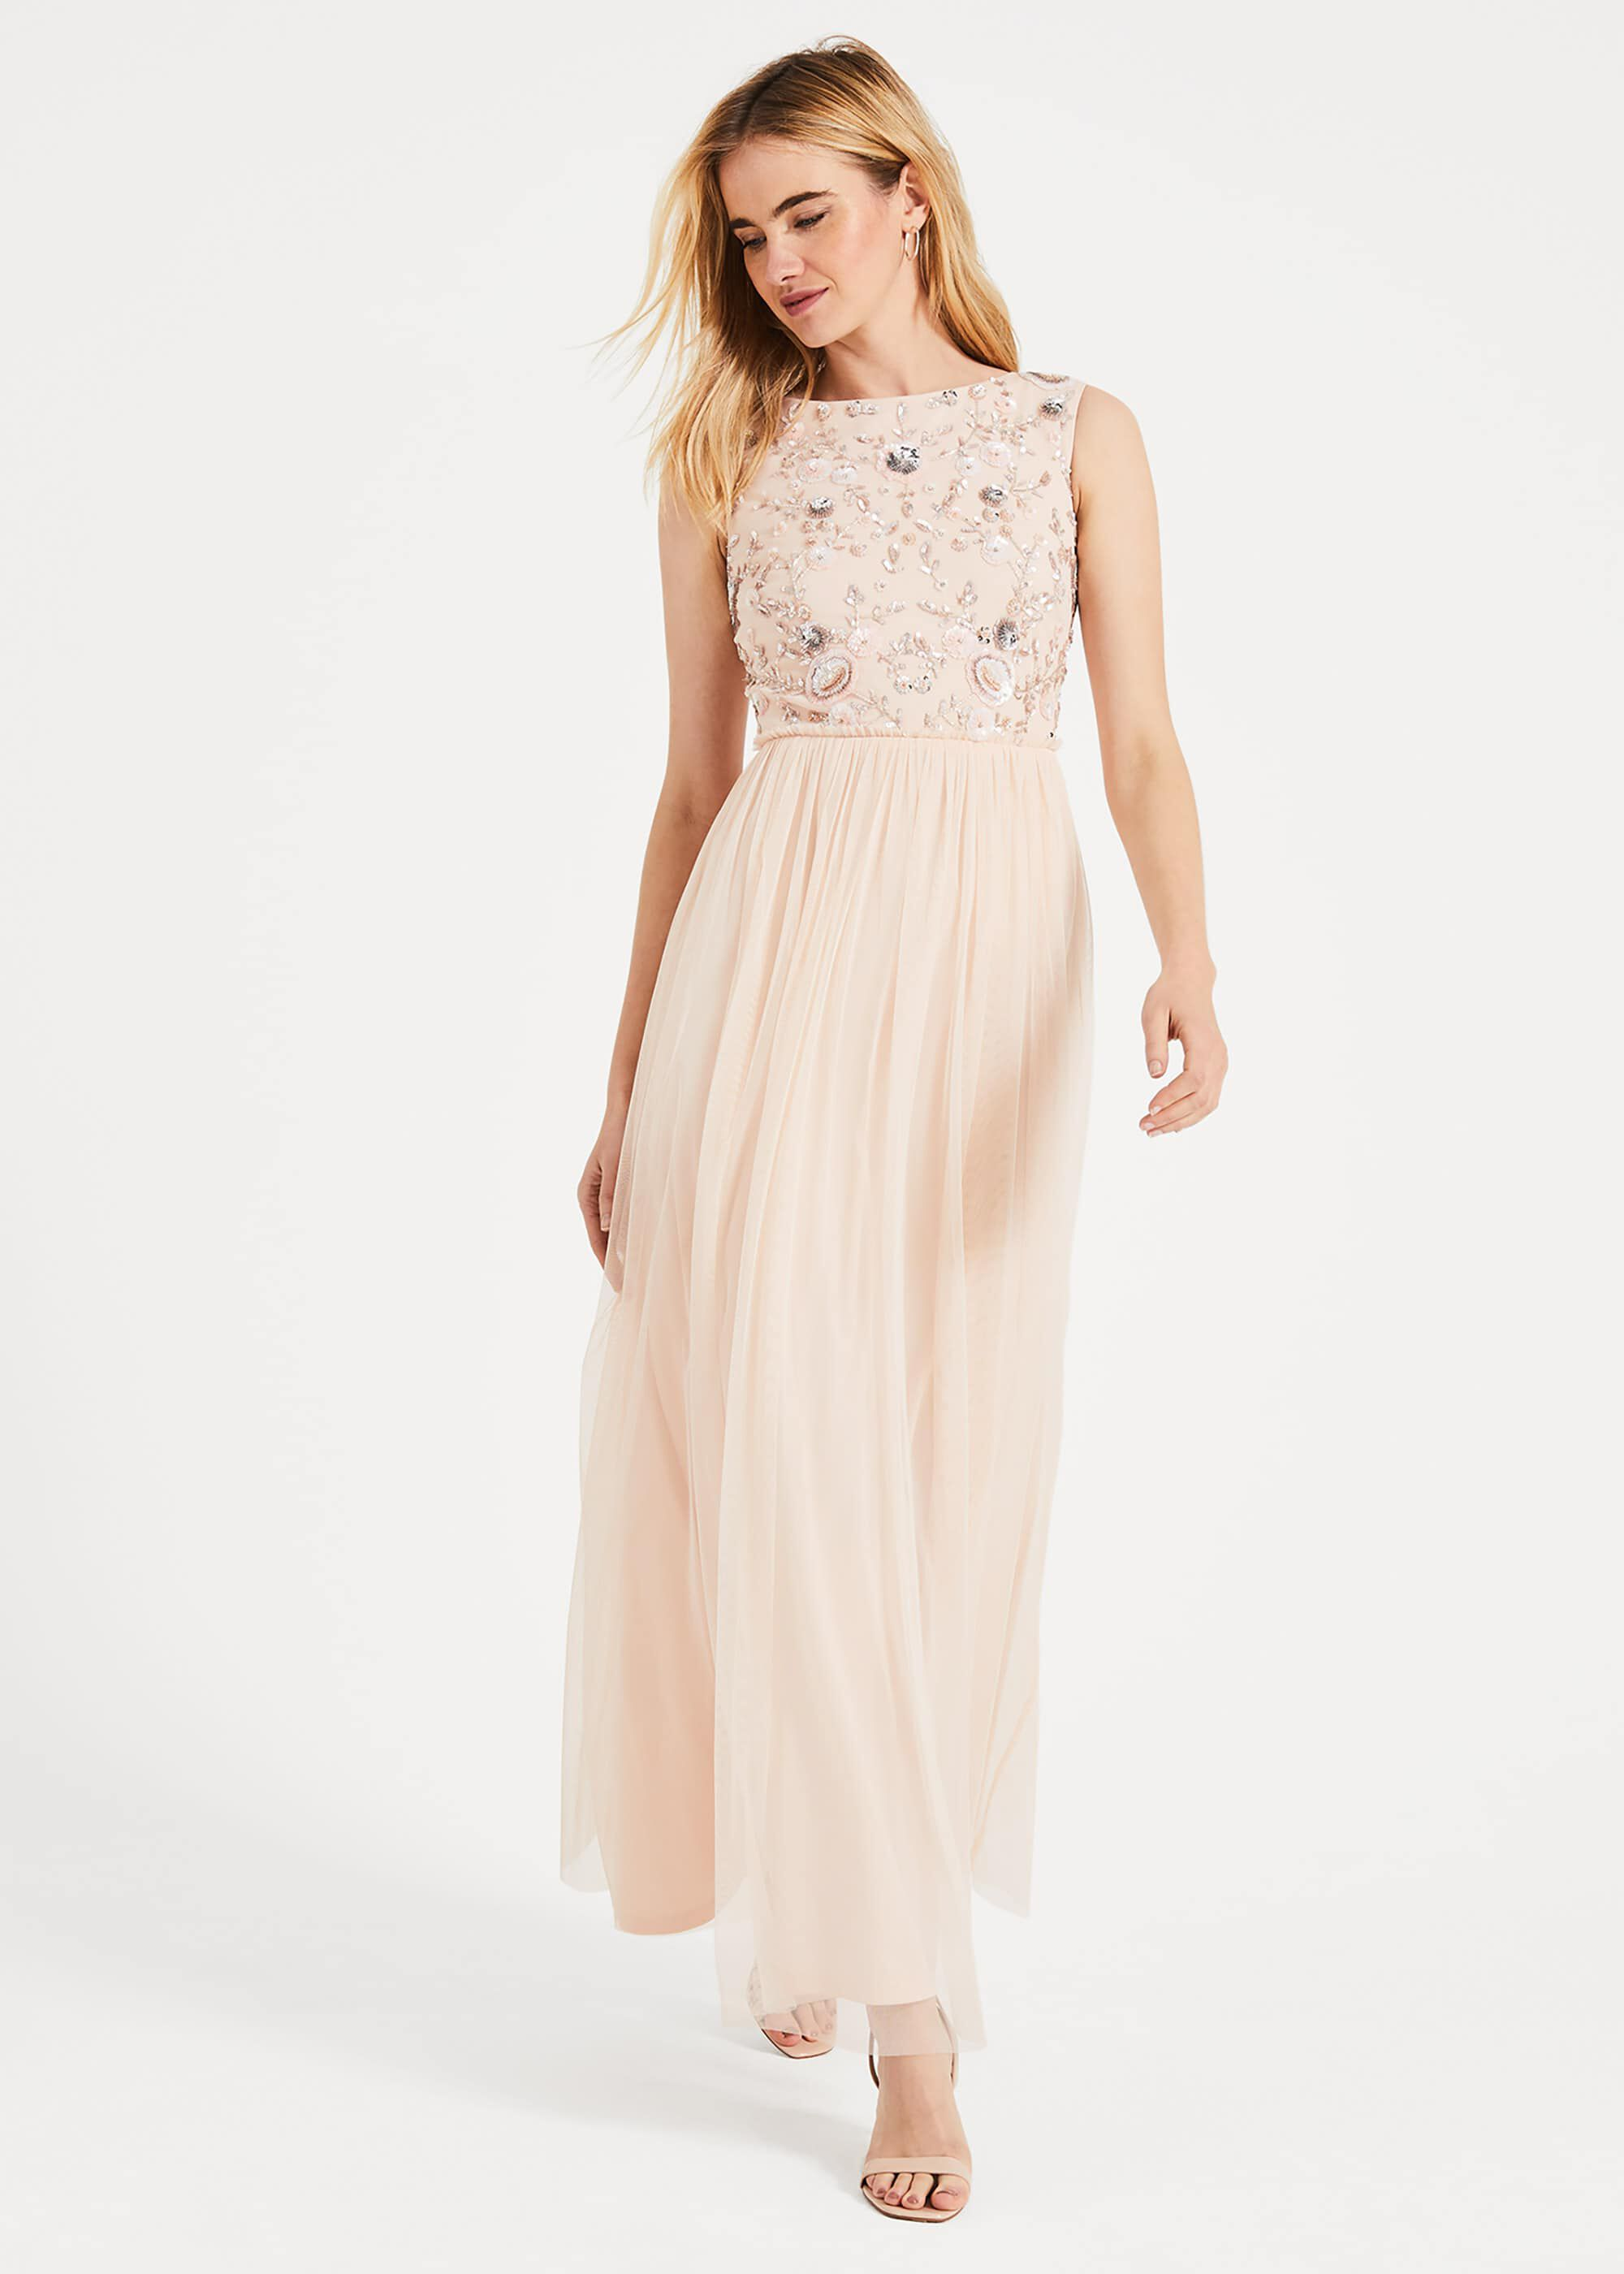 Phase Eight Rosario Beaded Maxi Dress, Pink, Maxi, Occasion Dress